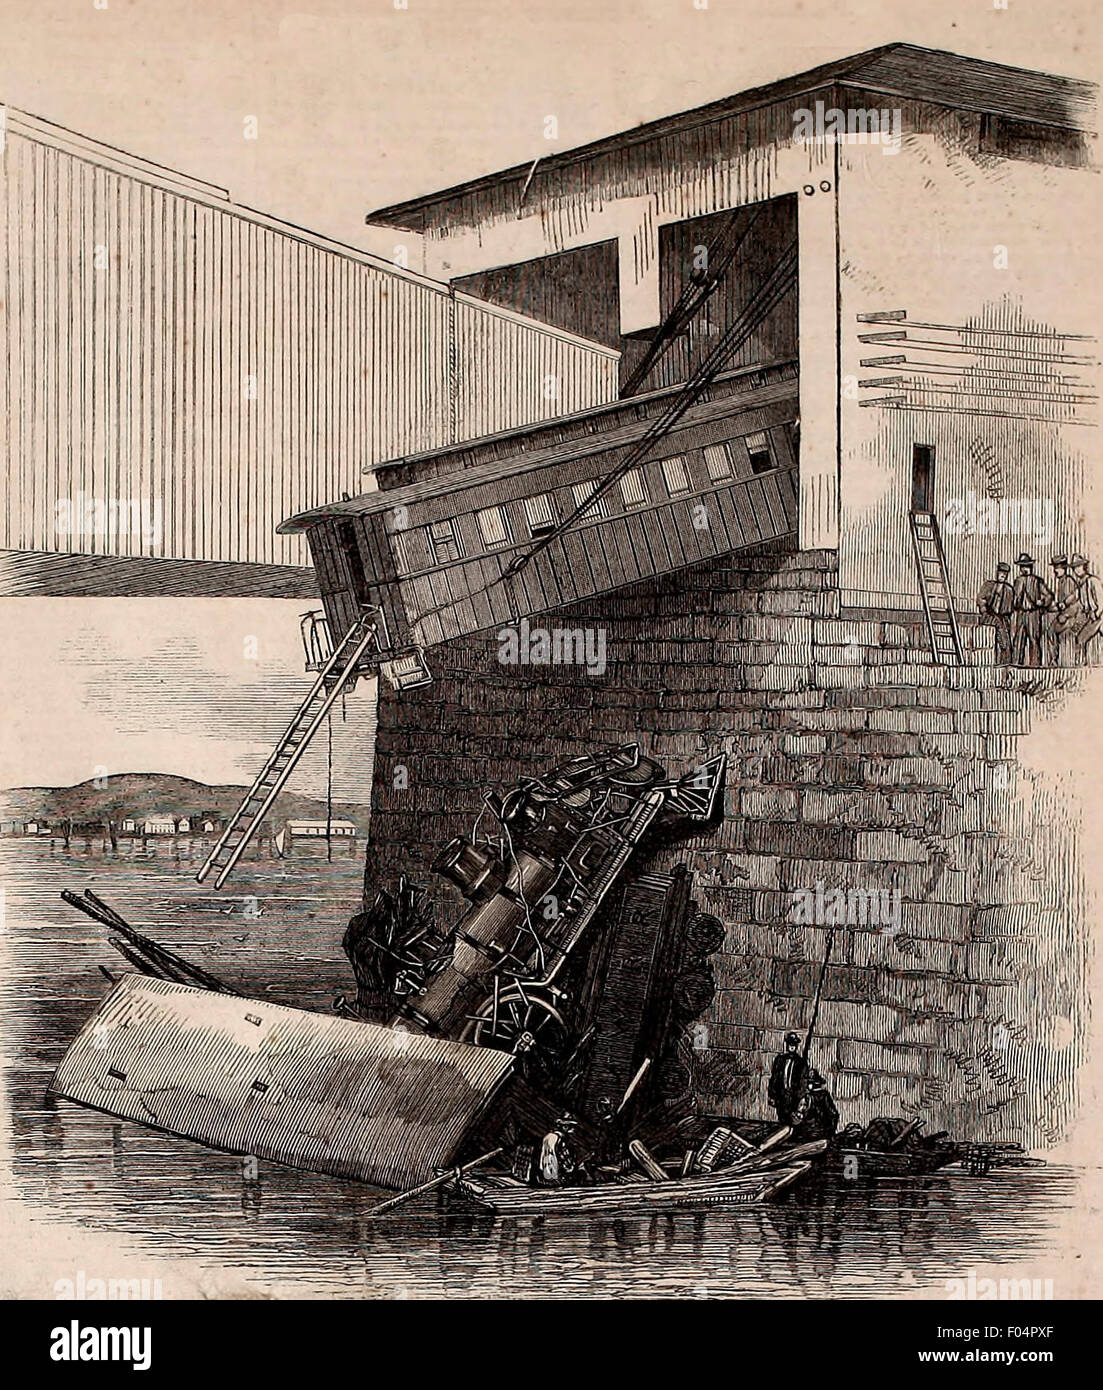 Startling accident at the draw bridge of the Rensselaer and Saratoga Railroad, Federal Street, Troy NY, Saturday, - Stock Image